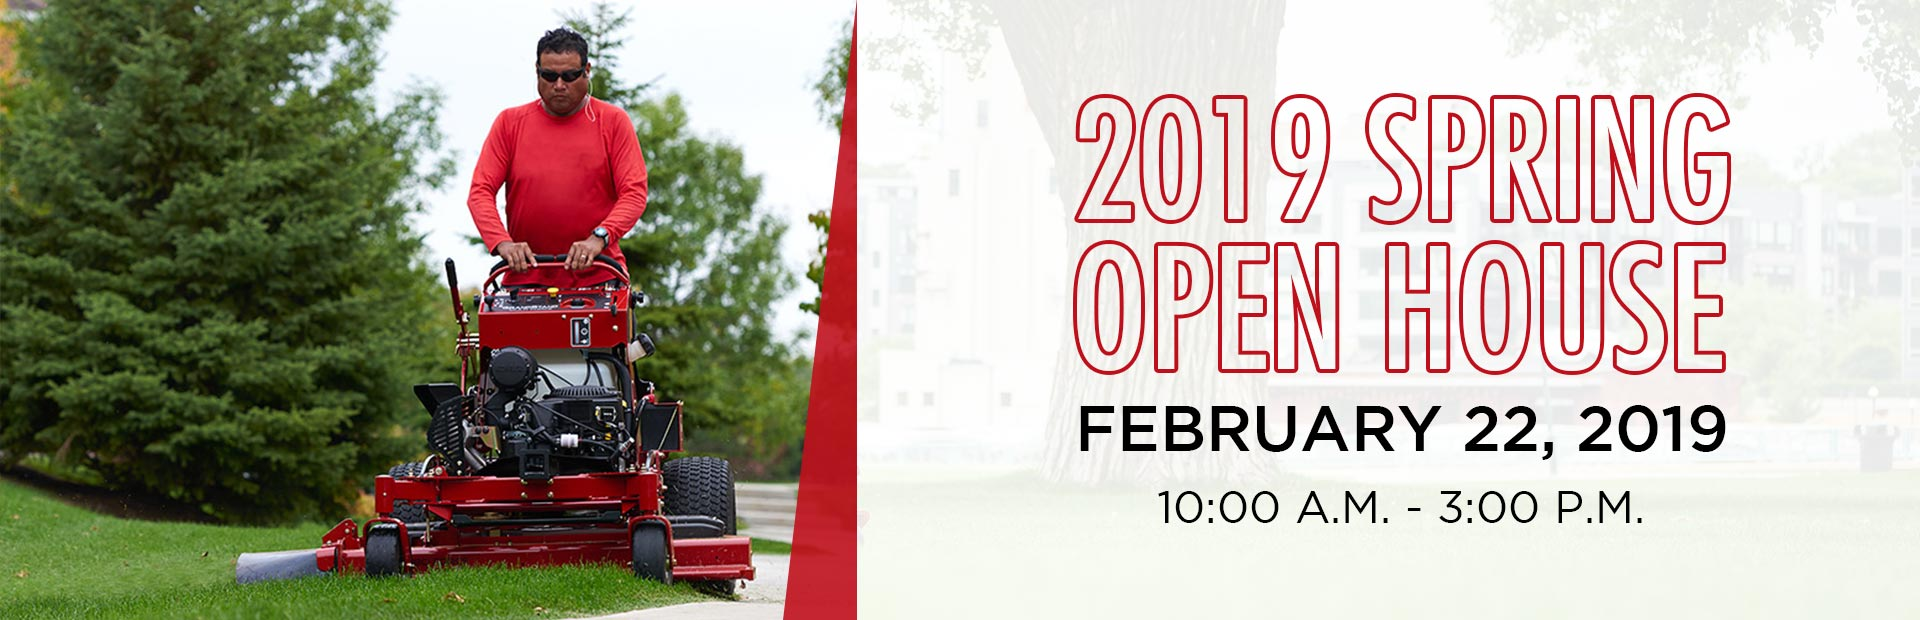 Join us February 22, 2019 for our 2019 Spring Open House!